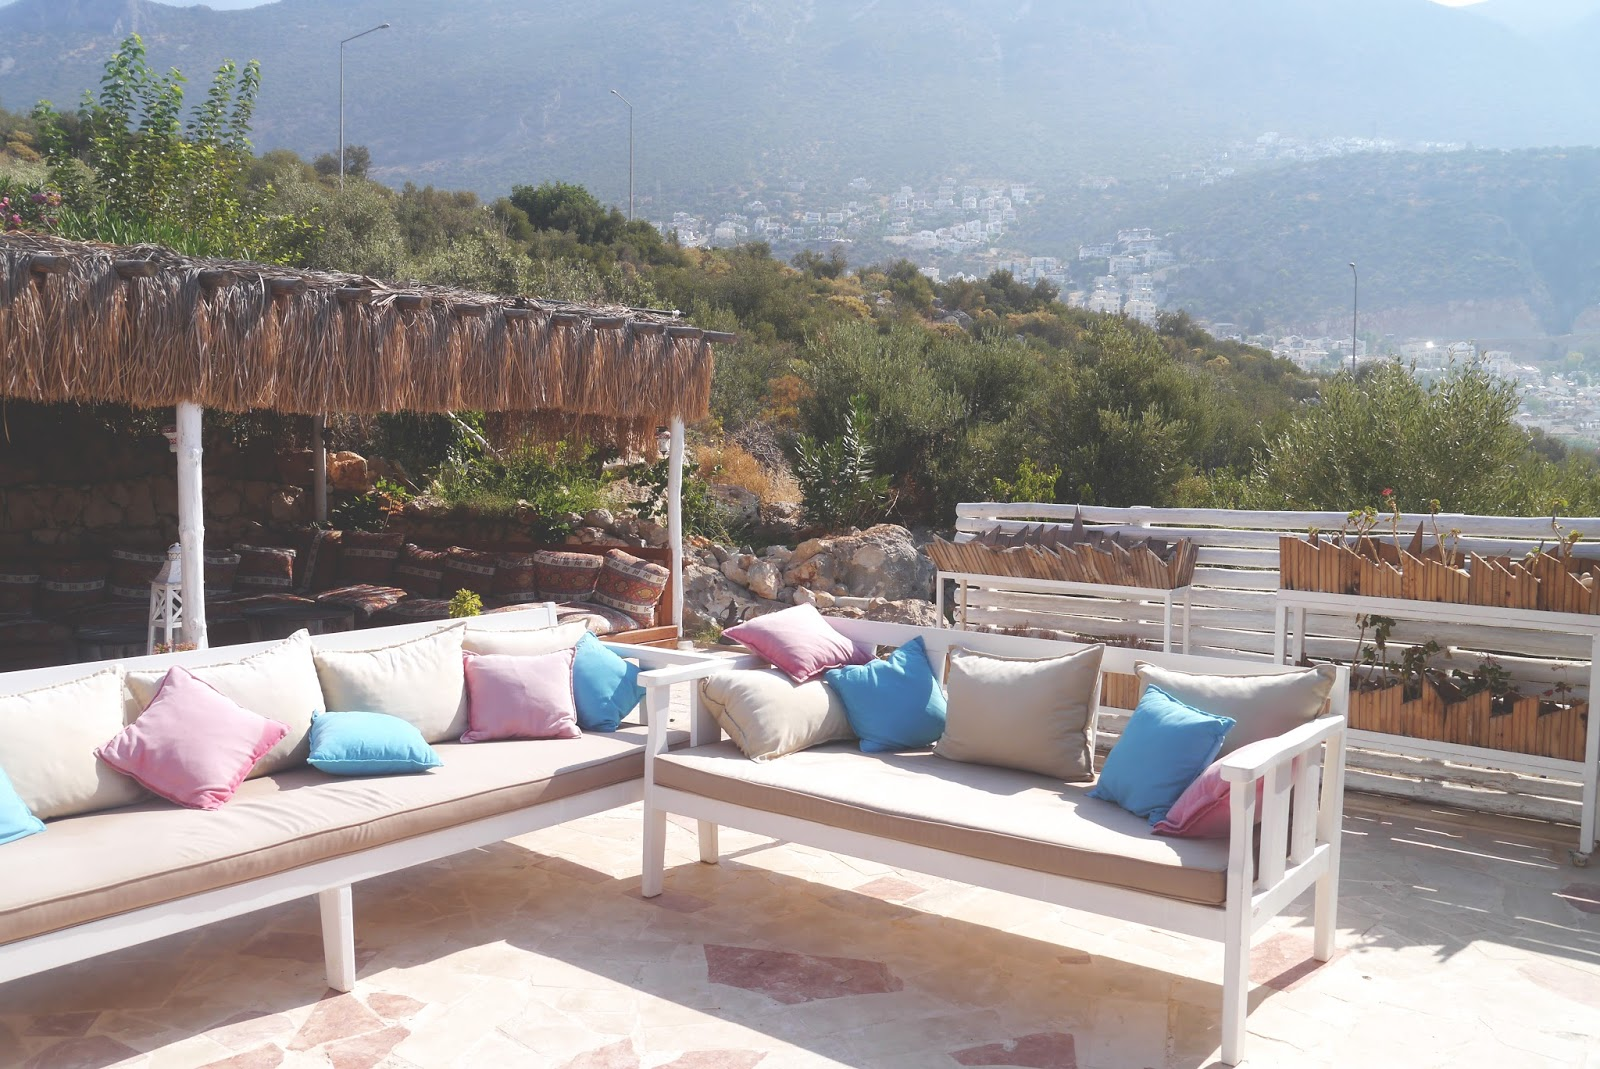 Review of Likya Pavillion Hotel in Kalkan, Turkey